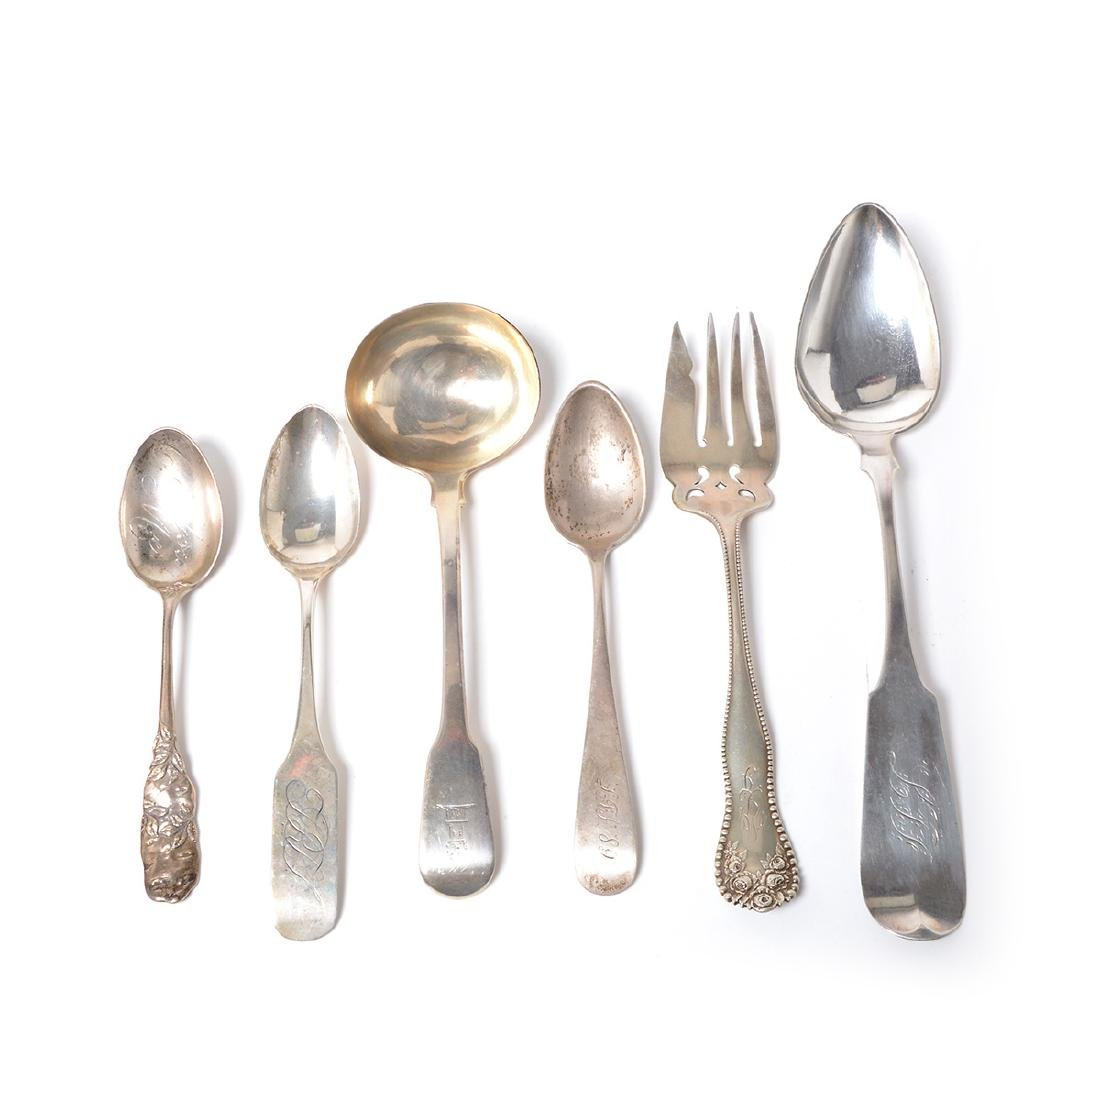 Assorted Coin Silver Flatware with Souvenir Spoons - 2